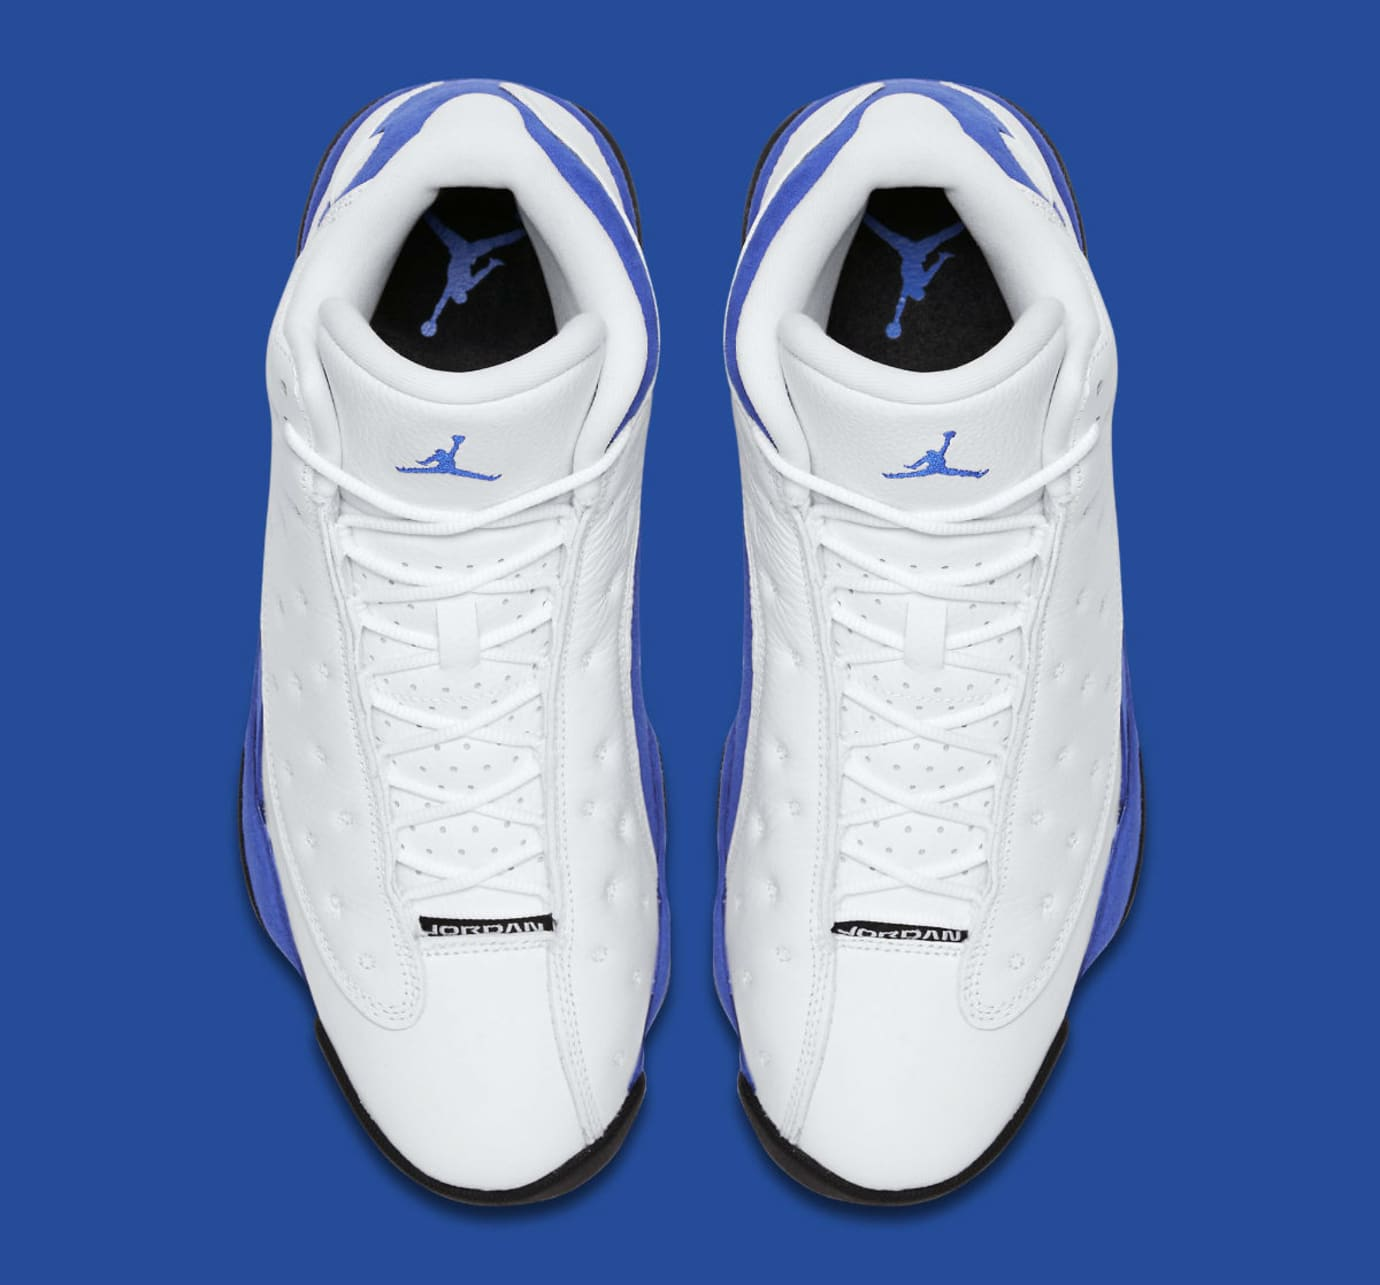 ad13e92fa40 Air Jordan 13 Quentin Richardson White Blue Release Date | Sole ...